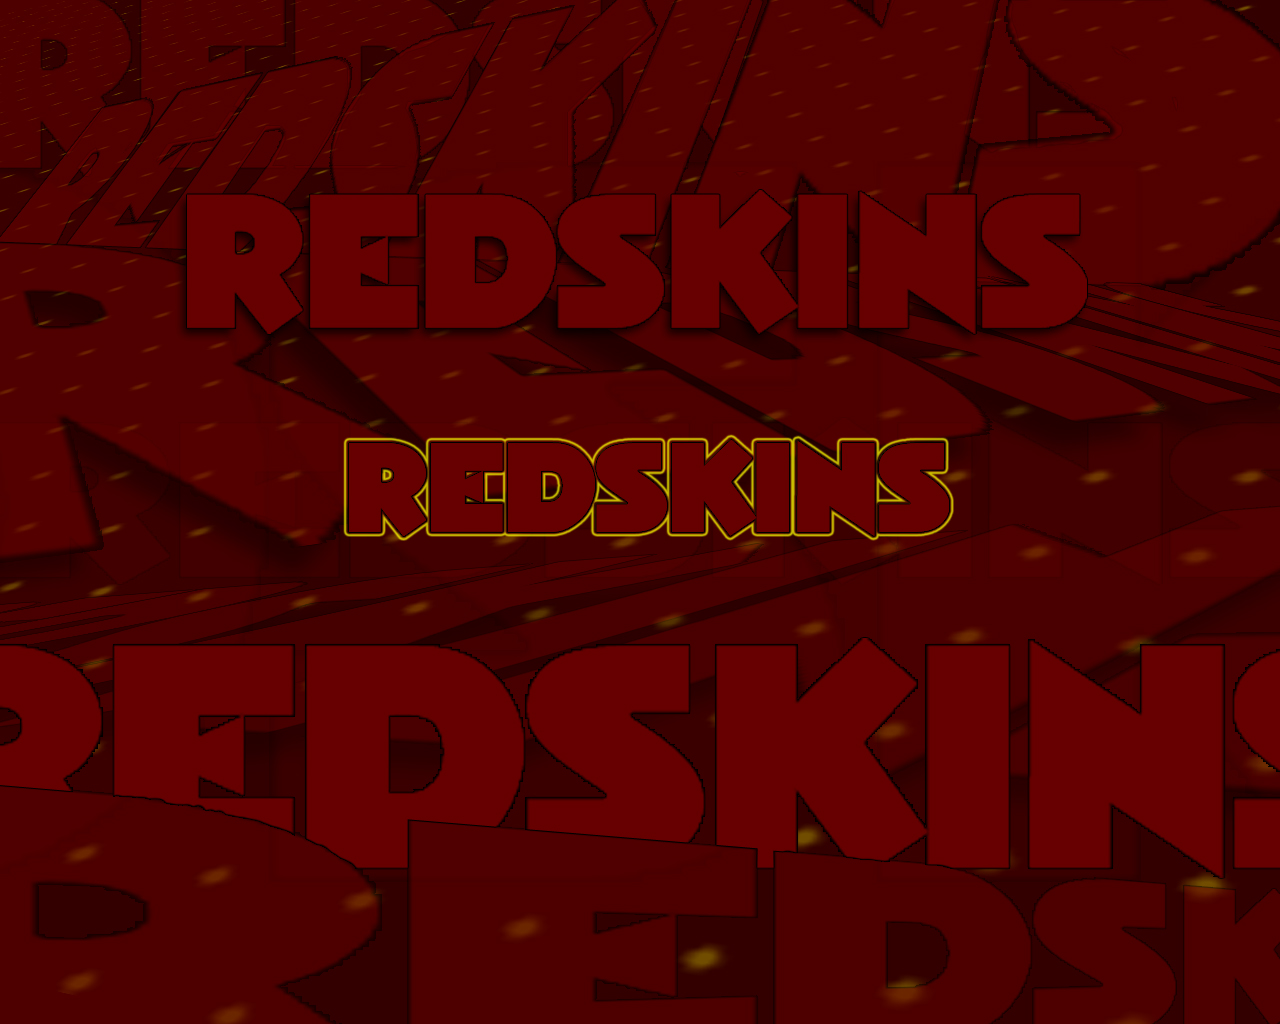 washington redskins wallpaper desktop wallpaper washington 1280x1024